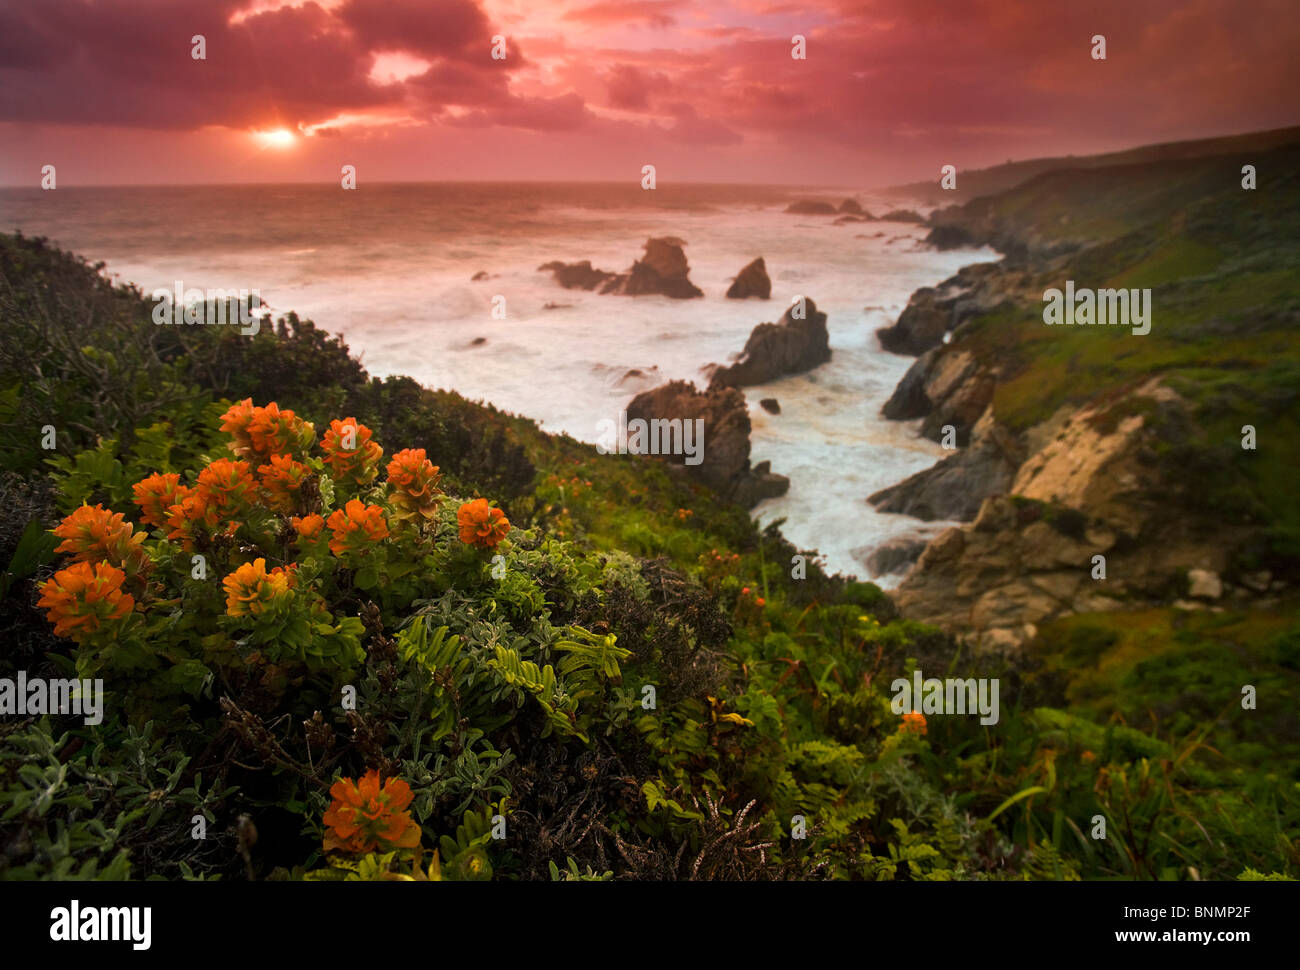 Big Sur coast, California, USA. - Stock Image